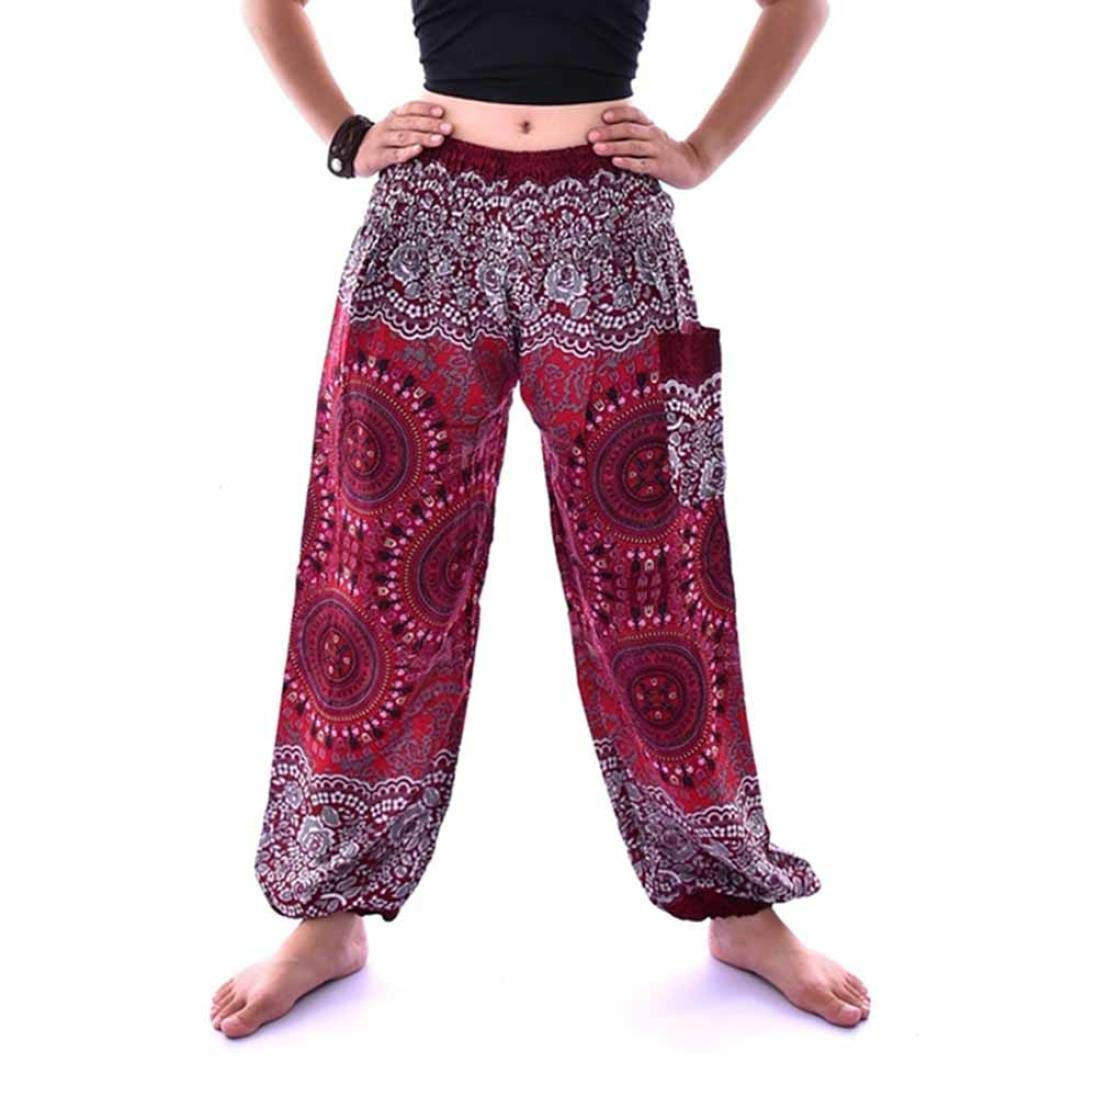 cbaf040774cbb Amazon.com: Ratoop Women's Boho Pants Hippie Clothes Yoga Outfits Peacock  Design One Size Fits (Blue, Free): Clothing